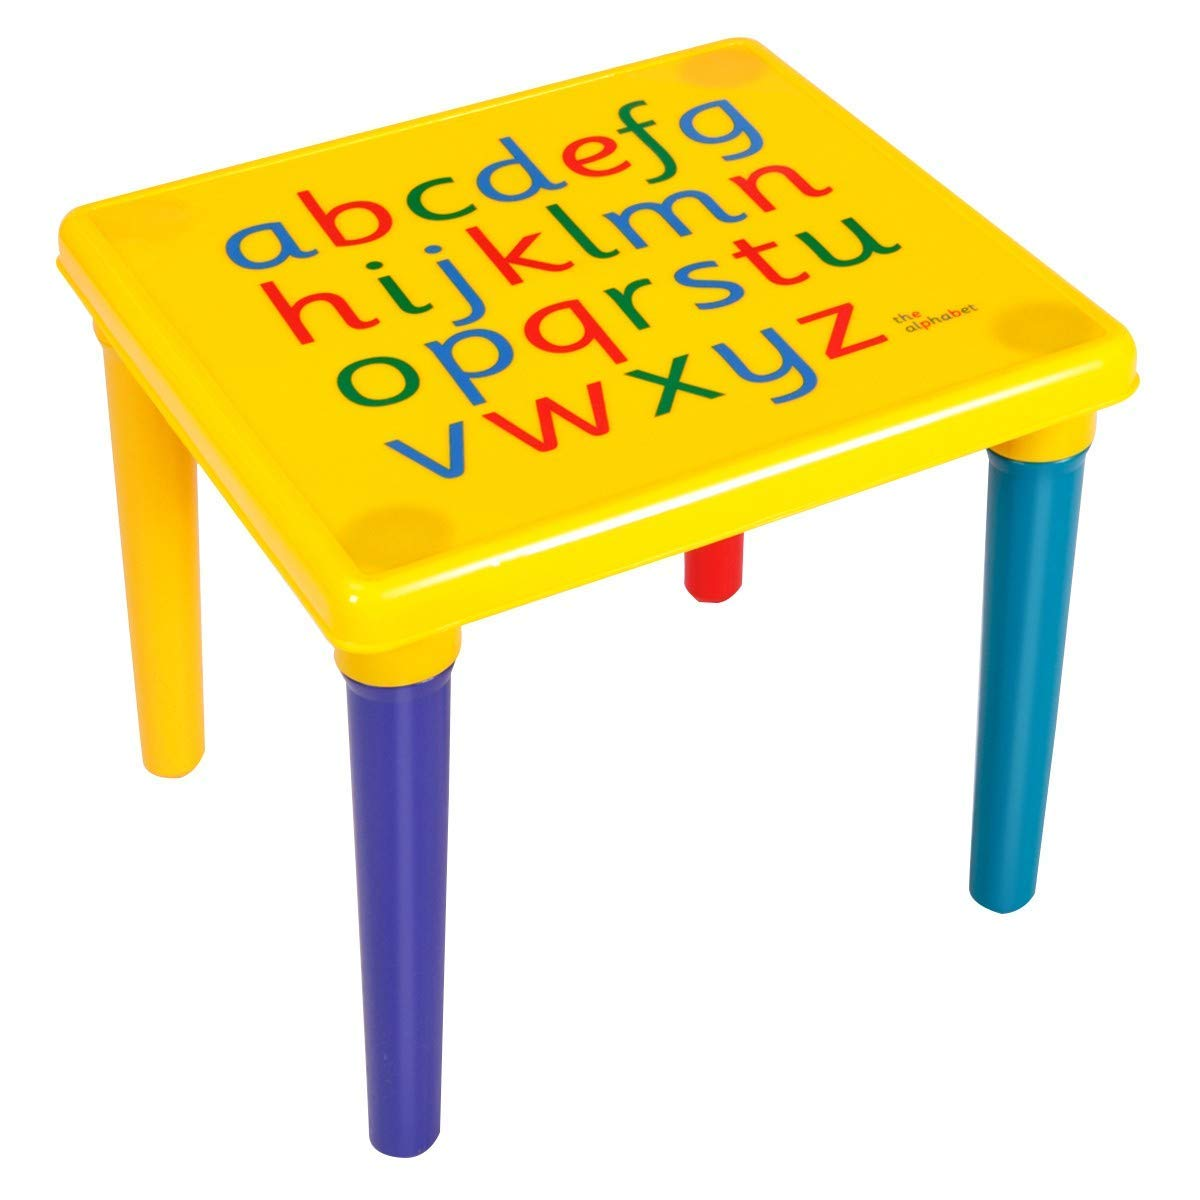 Children Plastic Table and Chair Set Classroom Playroom Nursery Play Activity Study Fun Kids Furniture